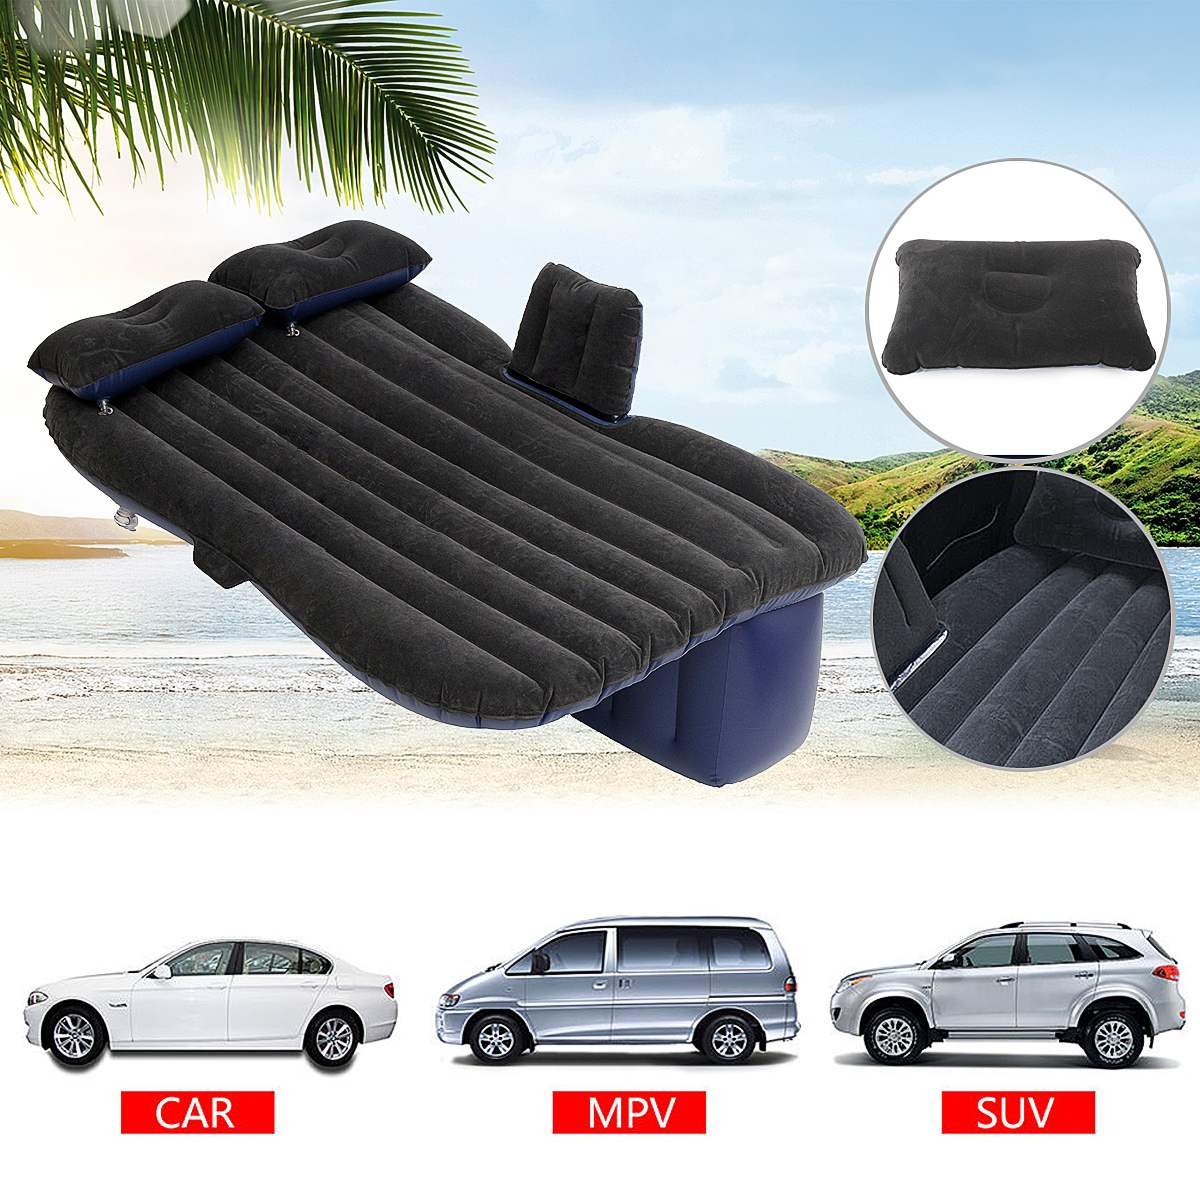 Good Quality Flocking Cloth Car Back Seat Cover Car Air Mattress Travel Bed Inflatable Mattress Air Bed Inflatable Car Bed hot sales selling car back seat cover car air mattress travel bed inflatable mattress air bed good quality inflatable car bed